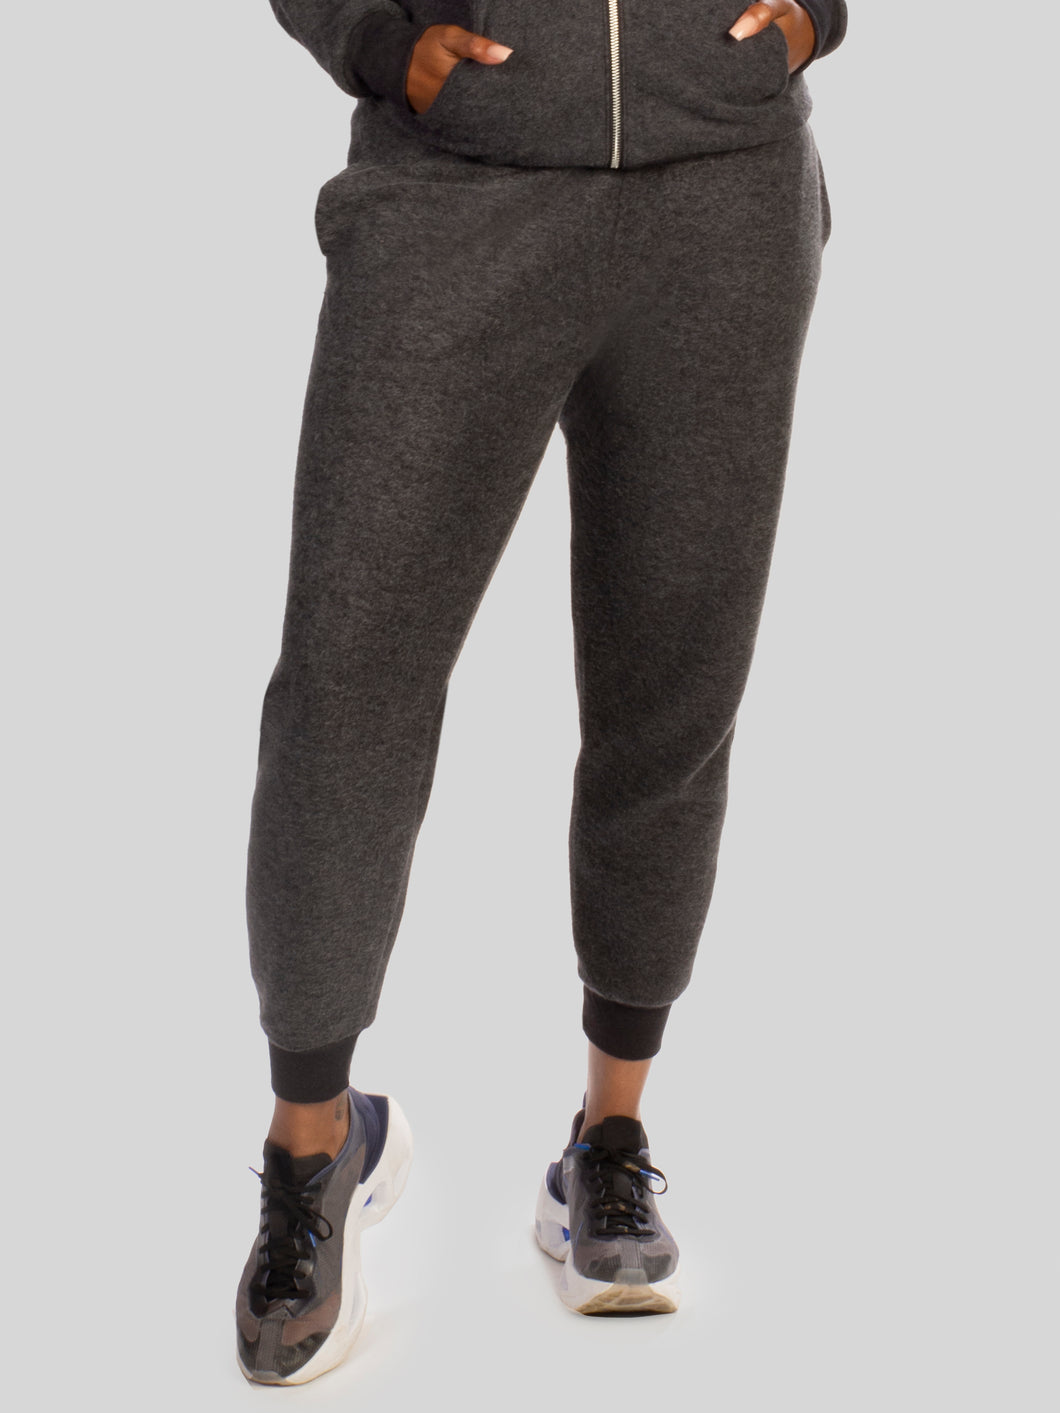 Rise To Every Challenge Lounge Pant in Black